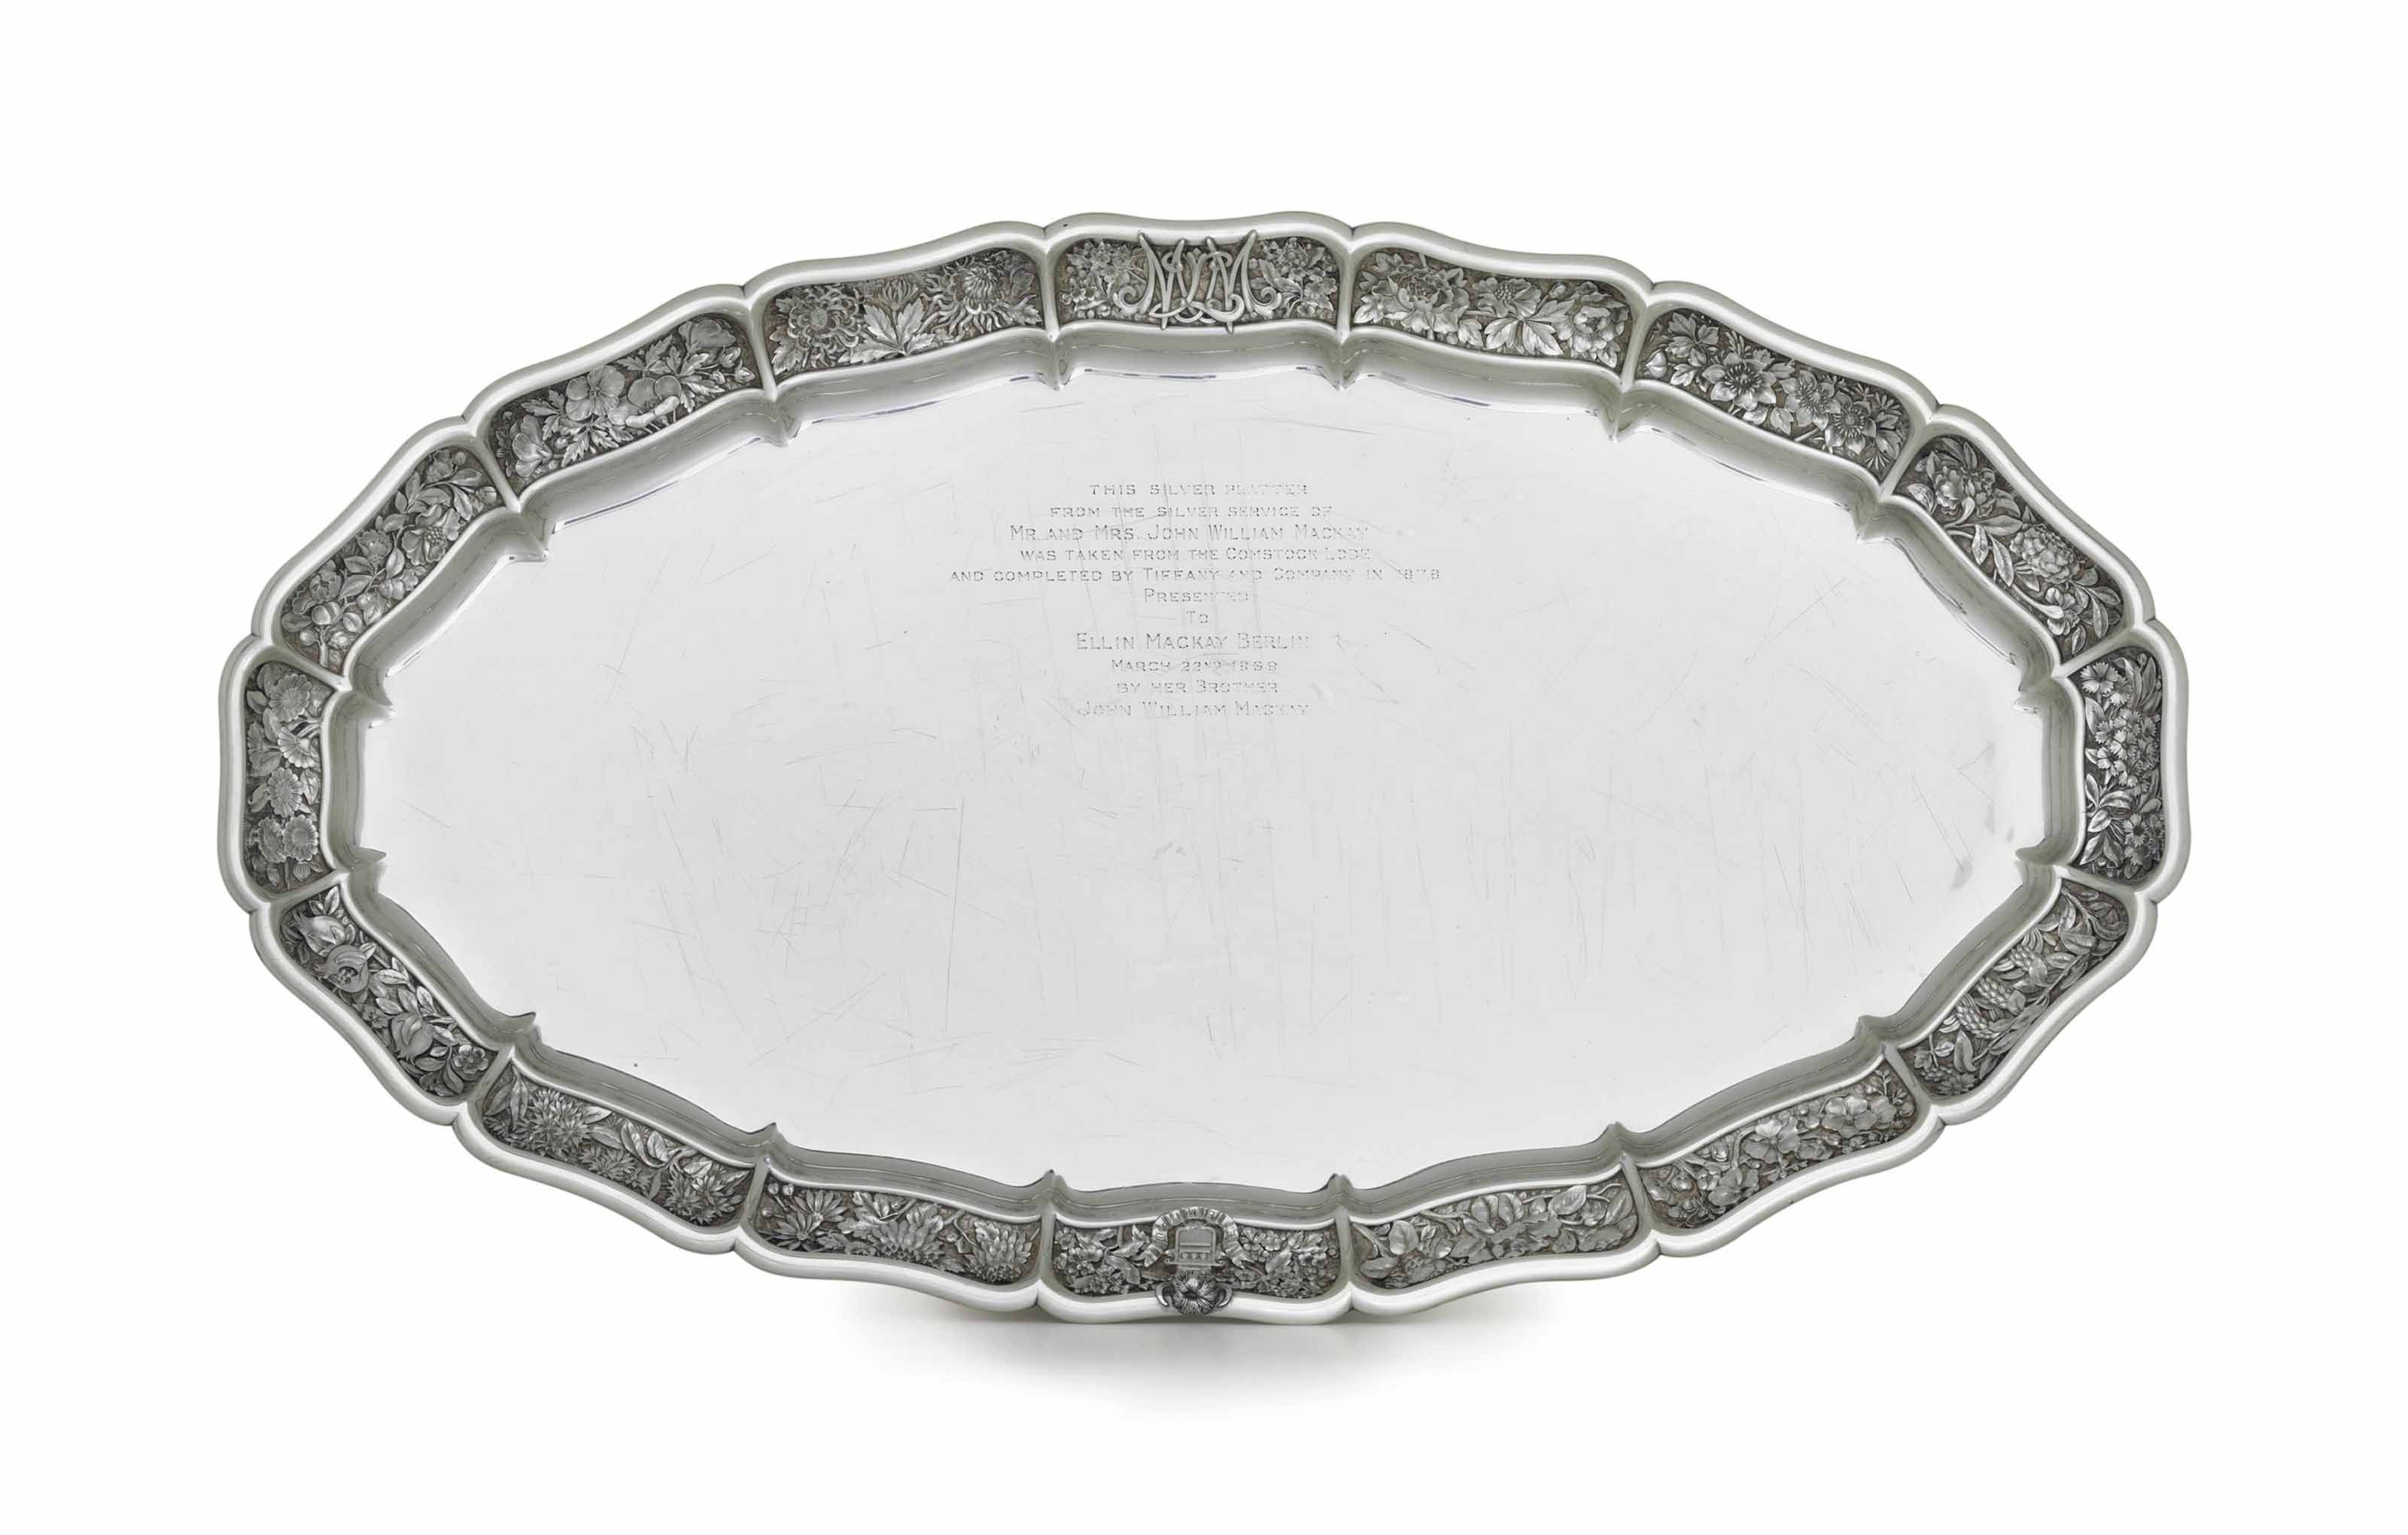 A SILVER MEAT PLATTER FROM THE